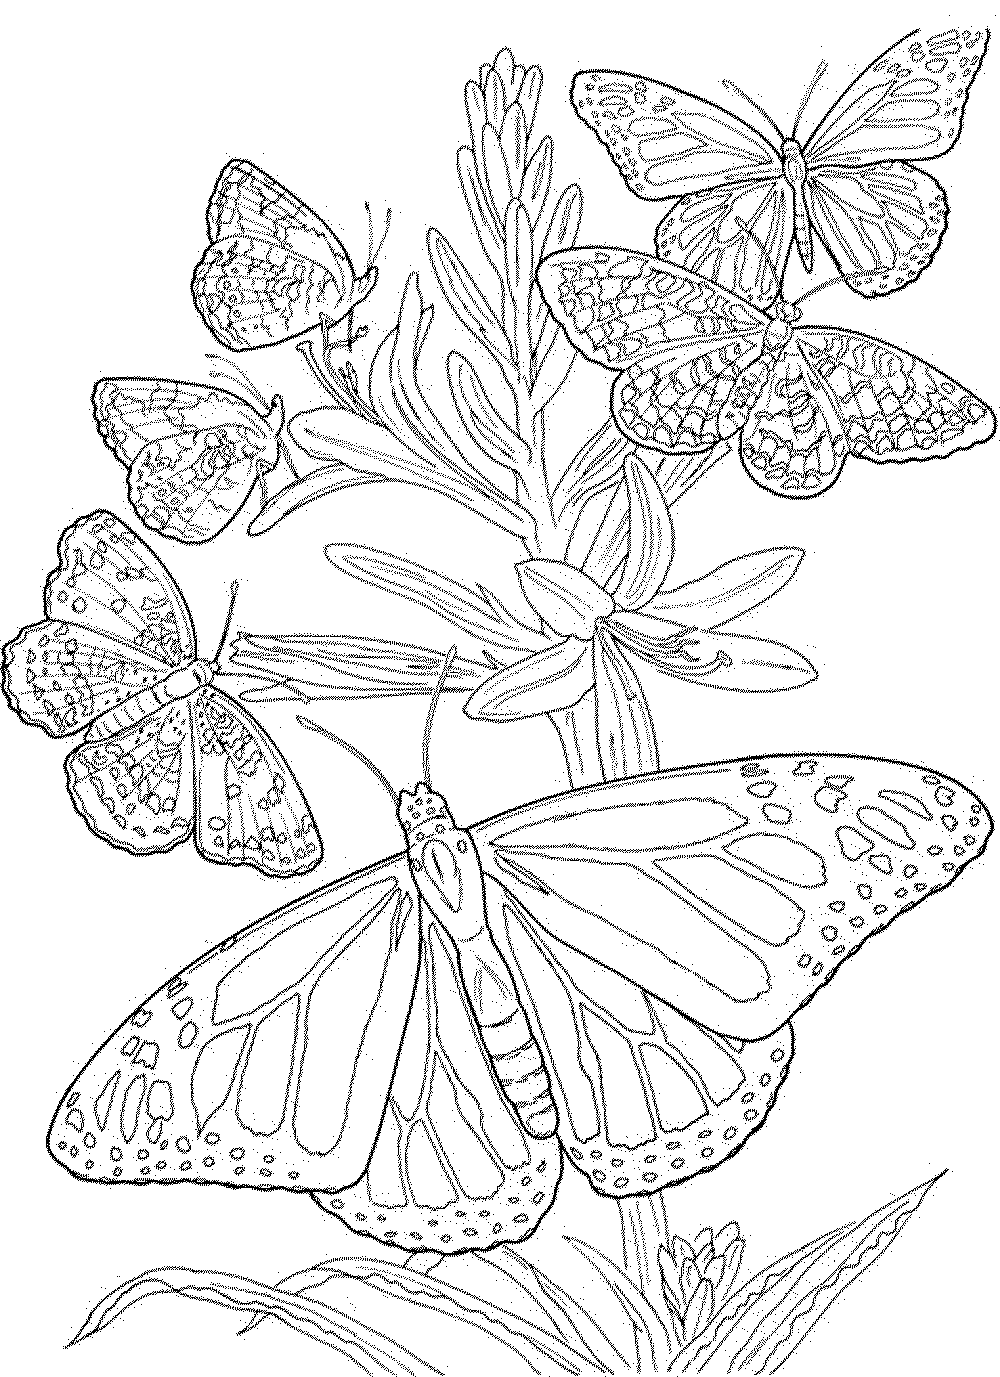 colouring pages for adults online free coloring book pages for adults printable kids colouring for online colouring adults pages free